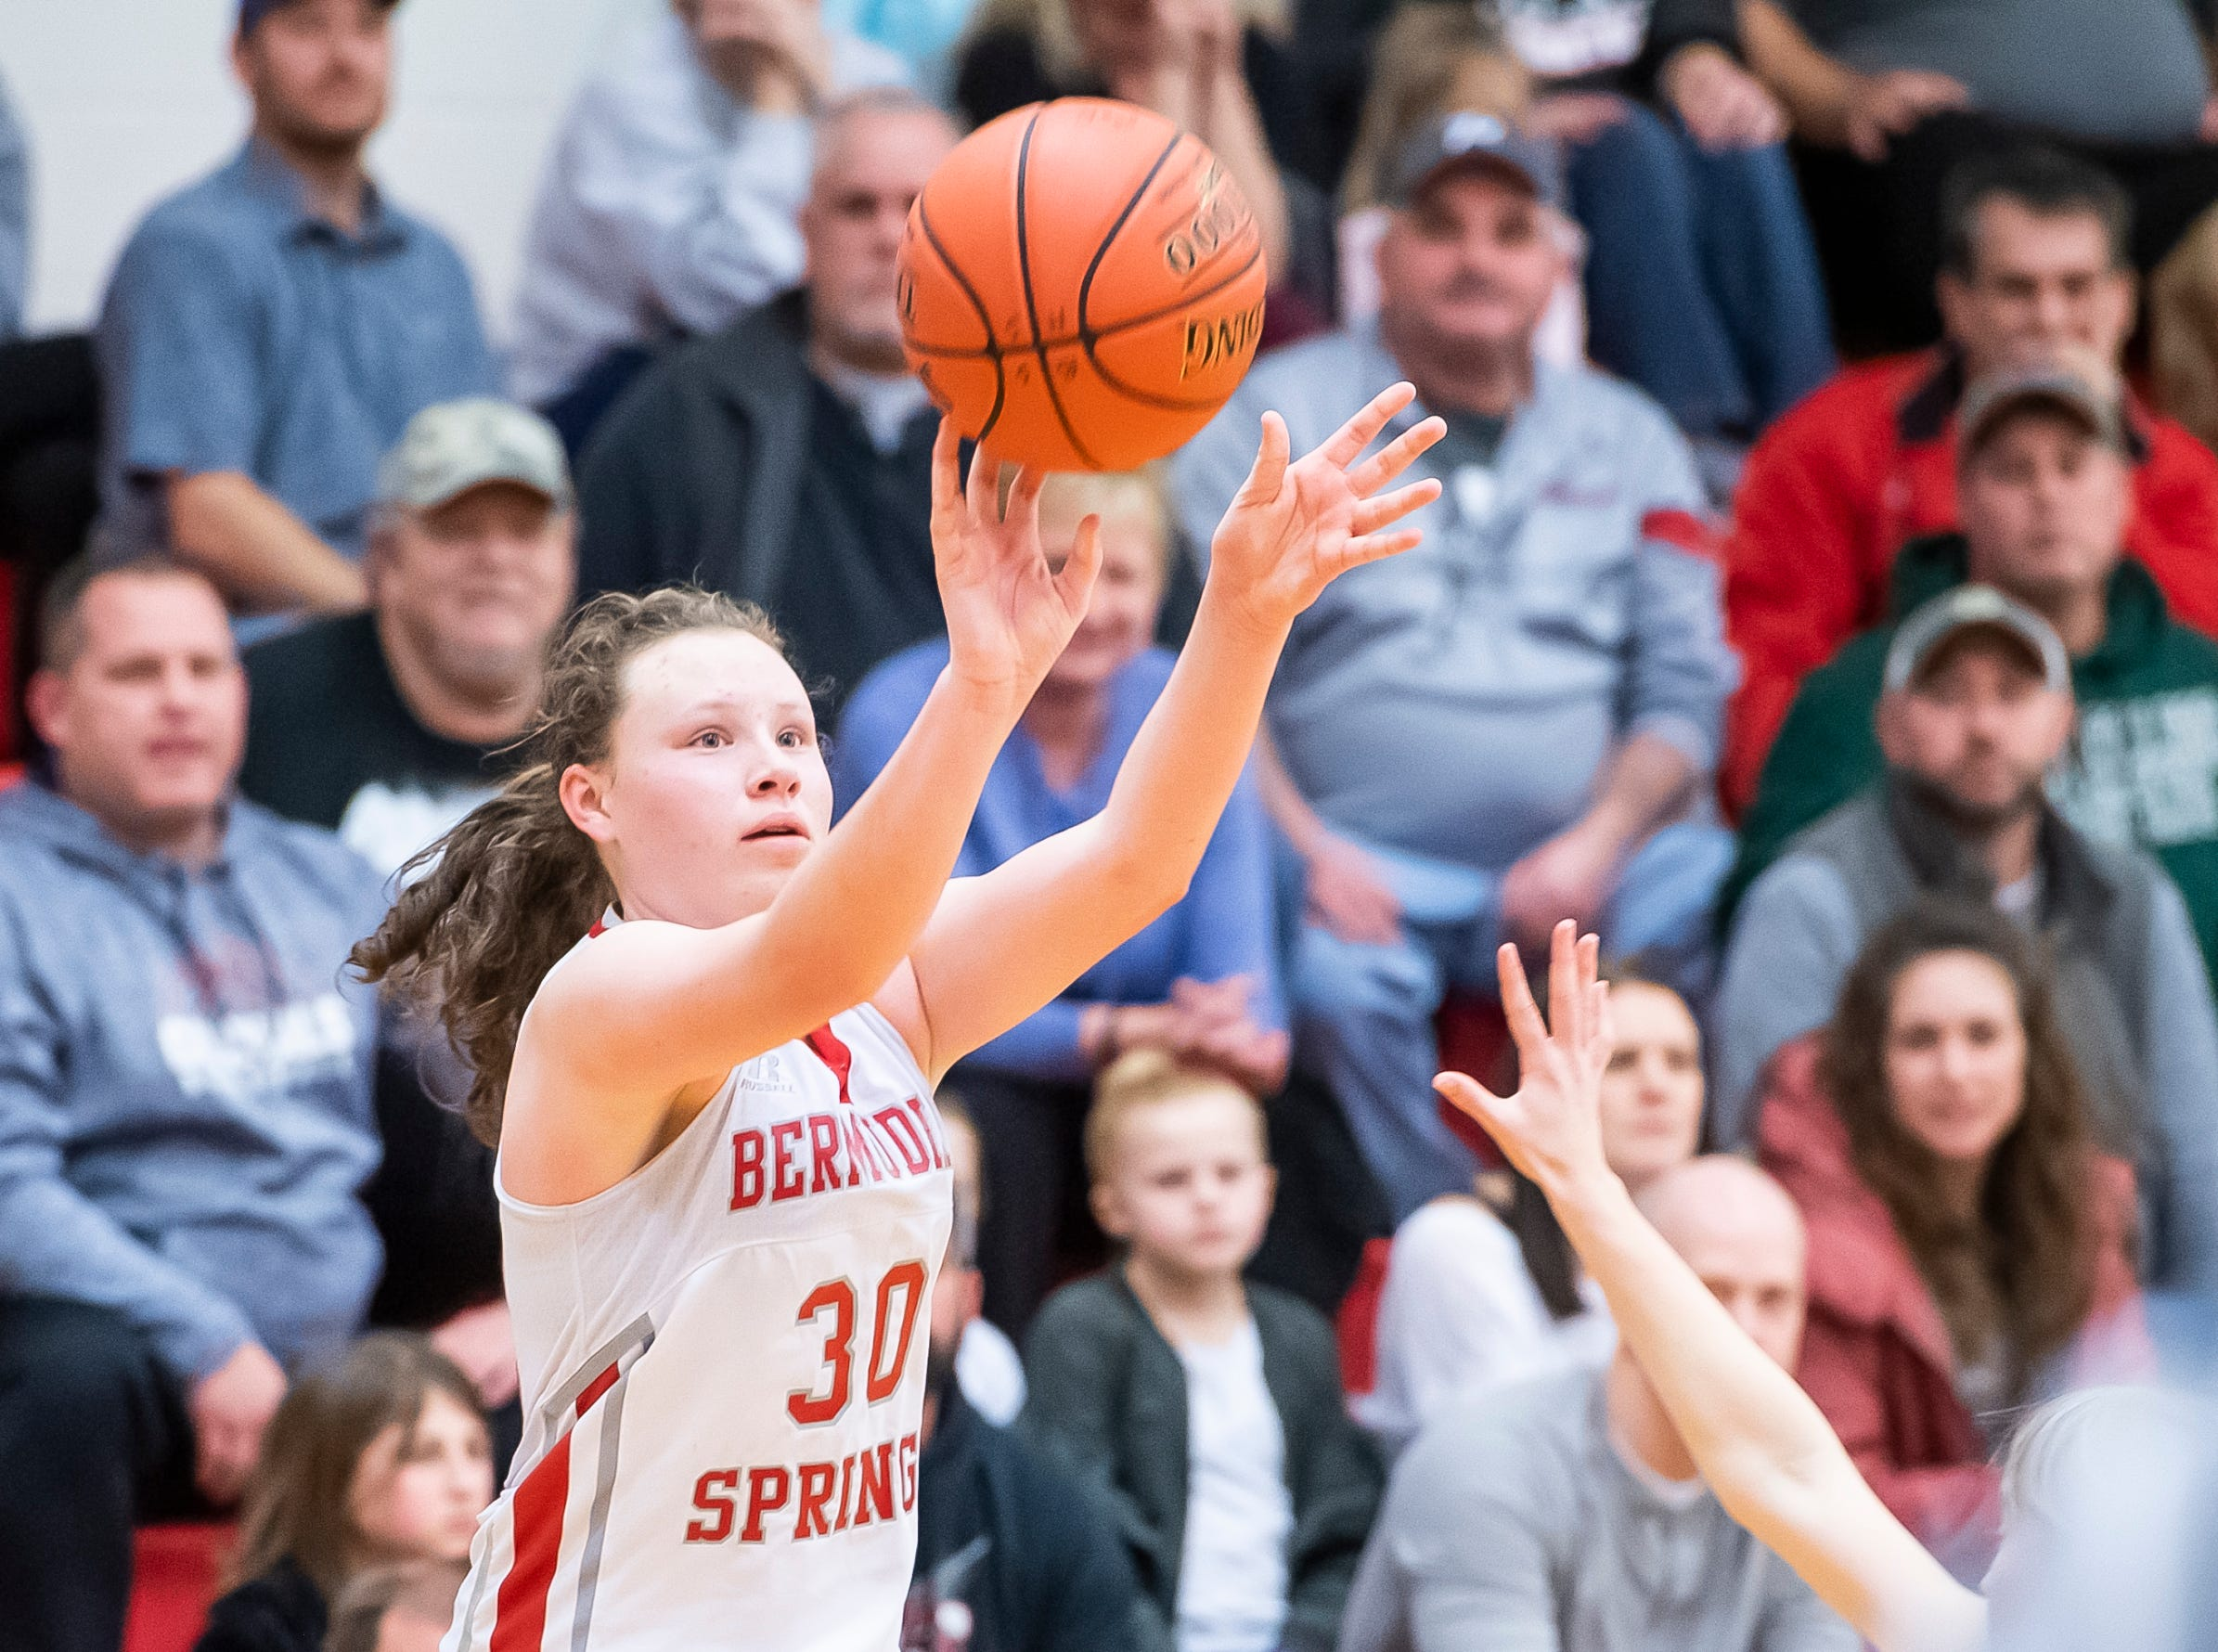 Bermudian Springs' Hannah Chenault shoots and scores a 3-pointer late in the fourth quarter against Northern Lebanon. Chenault, a freshman, scored a team-high 21 points, including five 3-pointers.